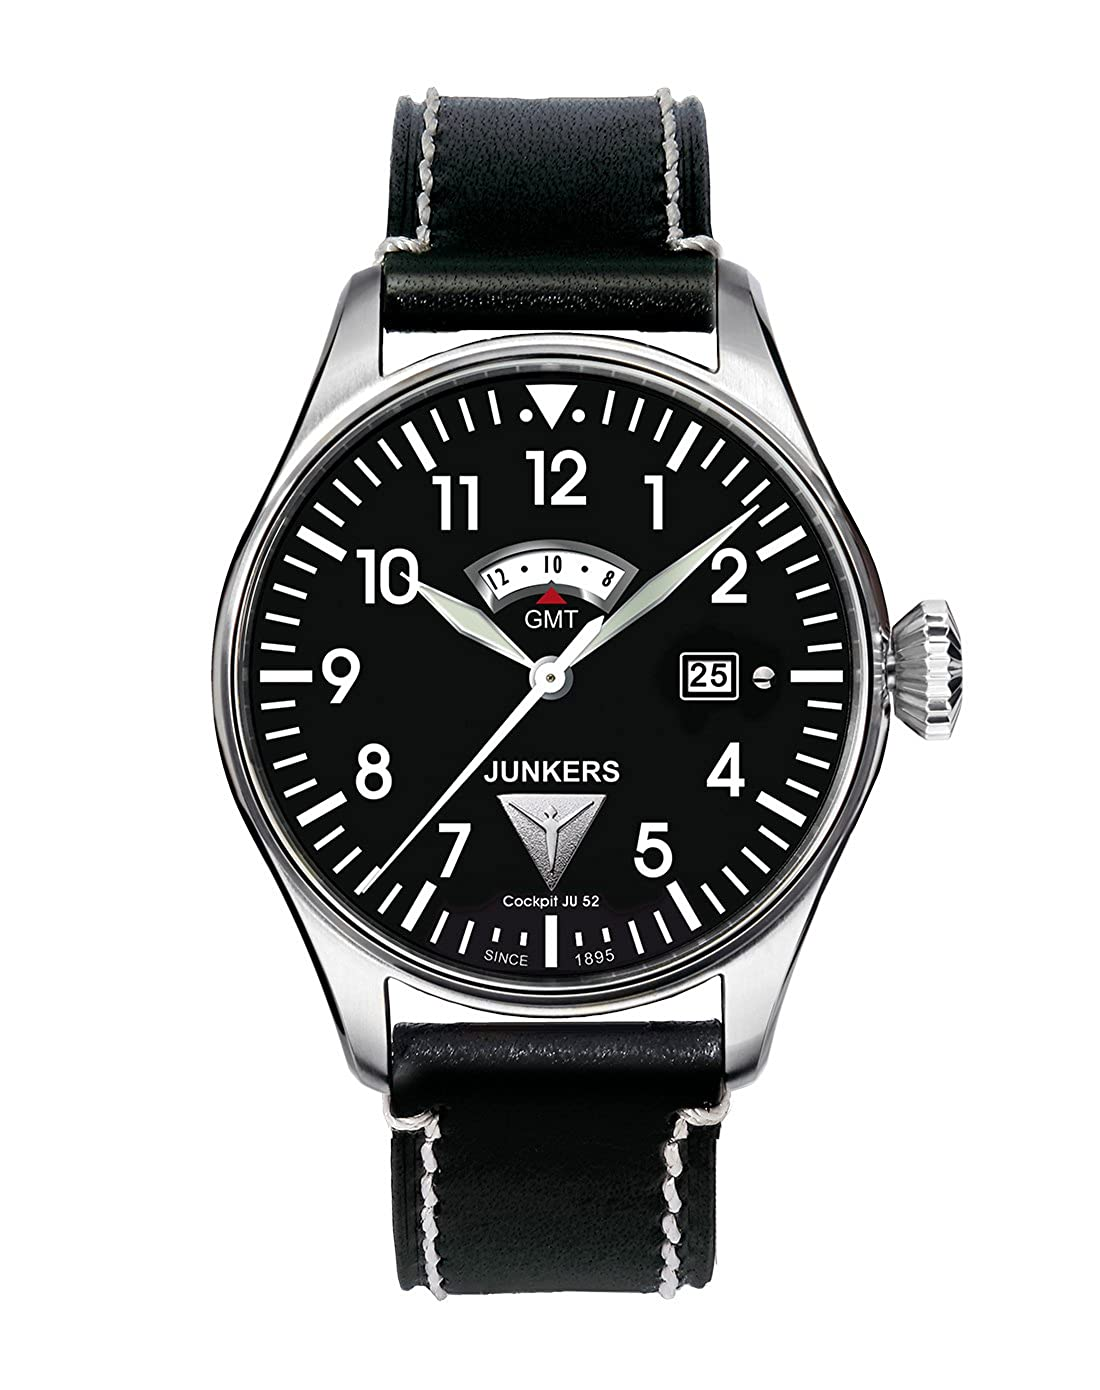 Amazon.com: JUNKERS - Mens Watches - Junkers Cockpit JU52 - Ref. 6140-2: Watches